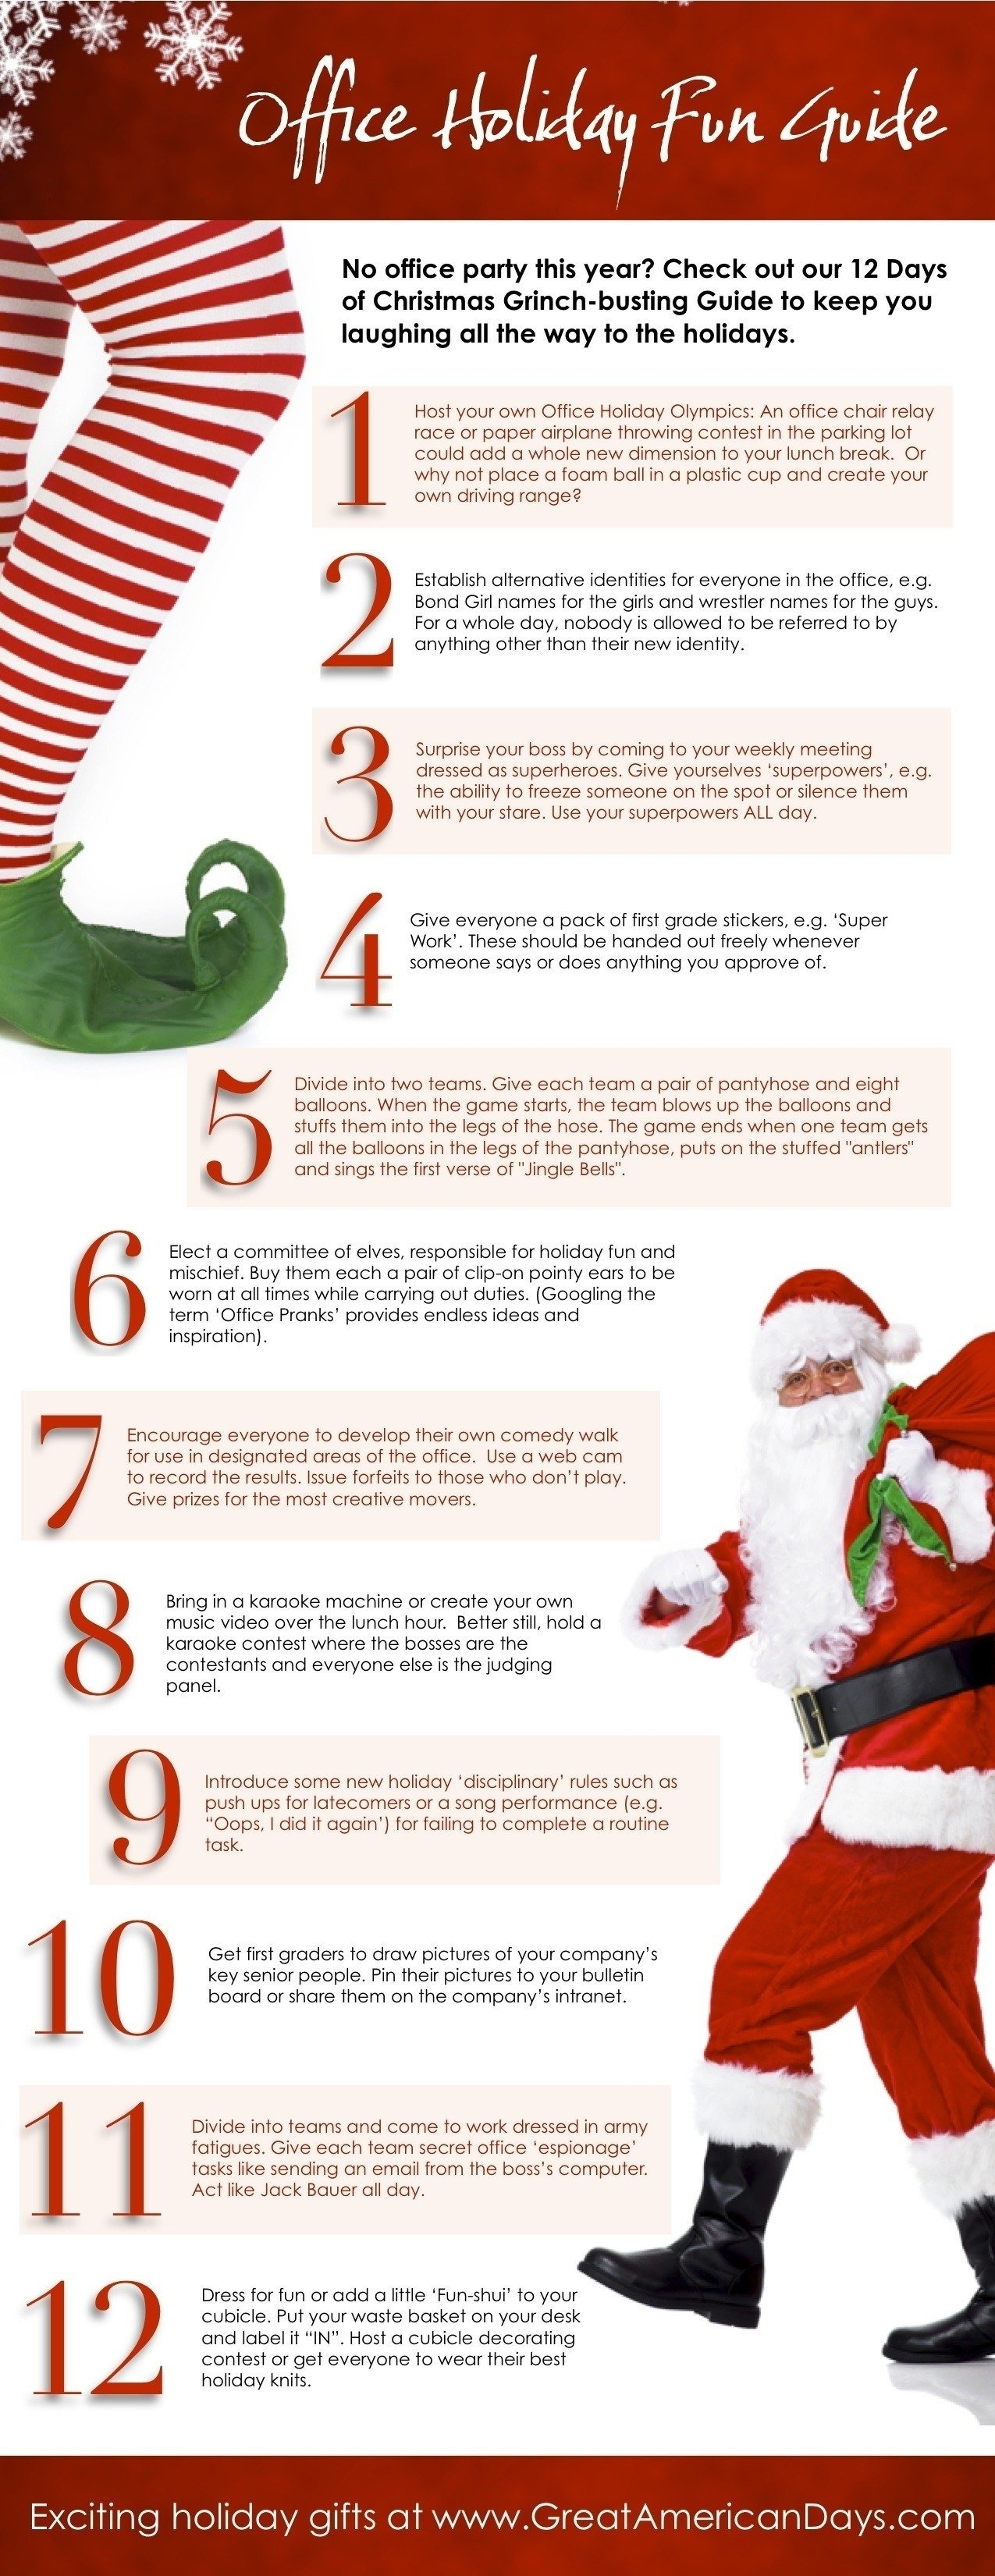 10 Attractive 12 Days Of Christmas Ideas 12 days of christmas ideas for work christmas design 2020